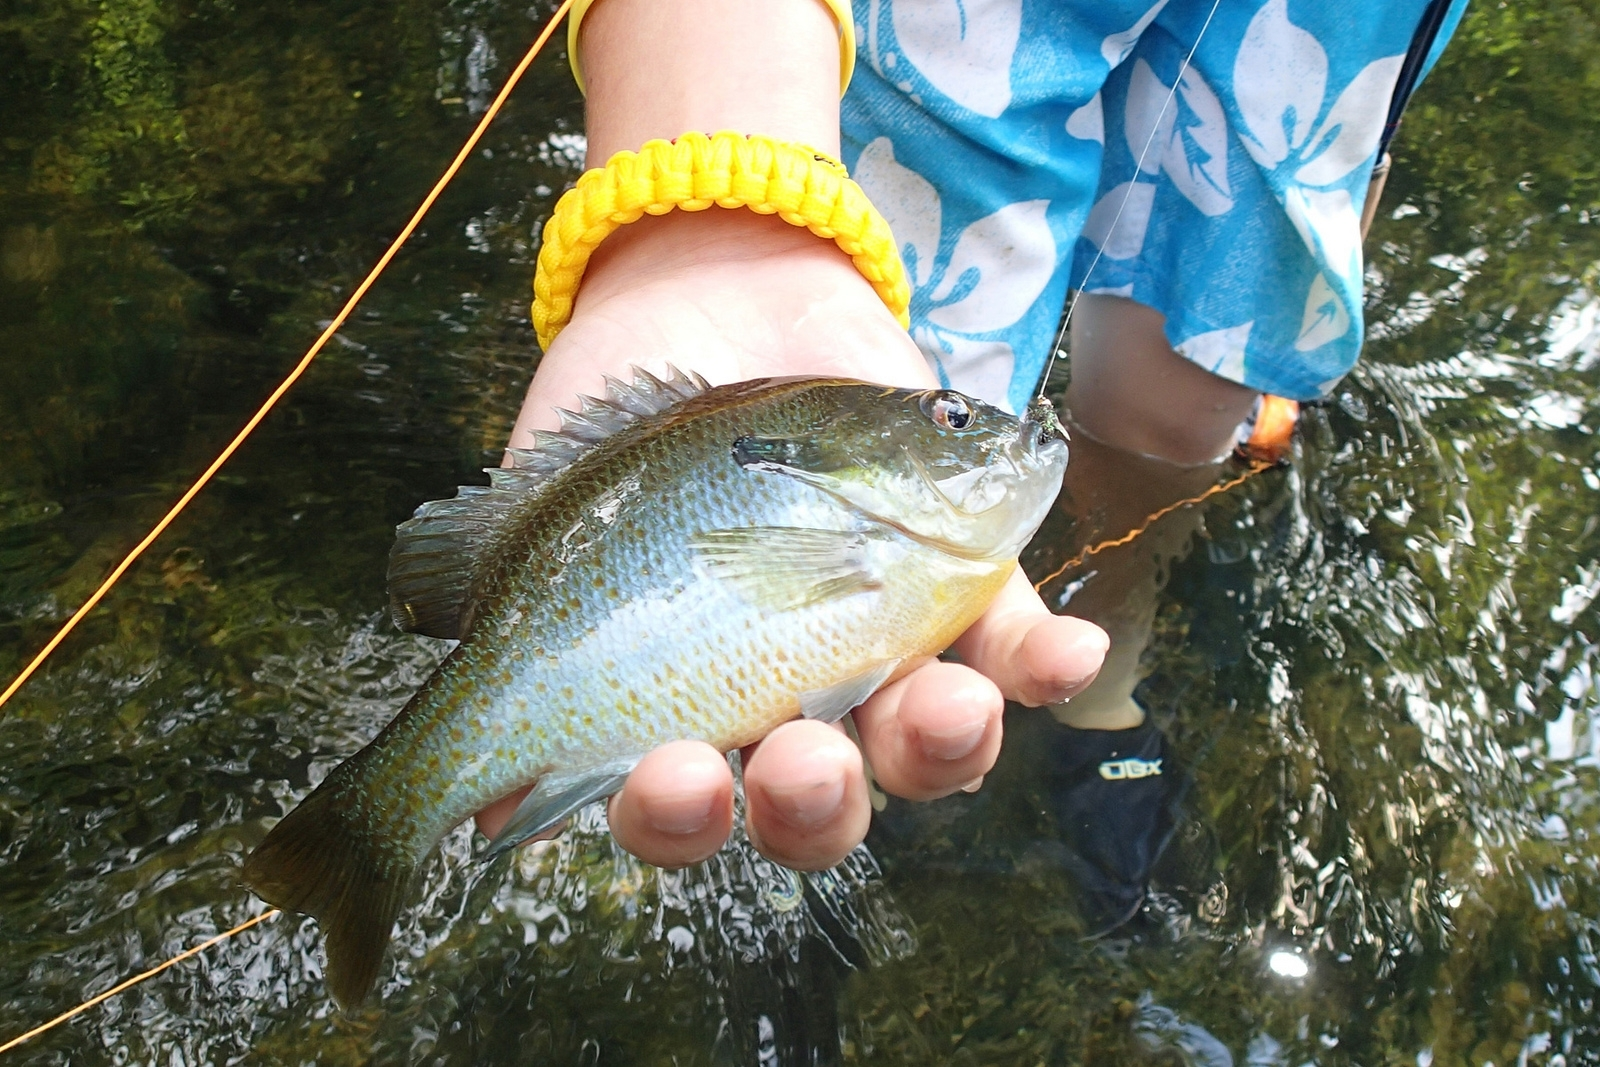 21680e73345f40a853e1_fishing_Project_Healing_Waters_Fly_Fishing_-_Northern_VA.JPG